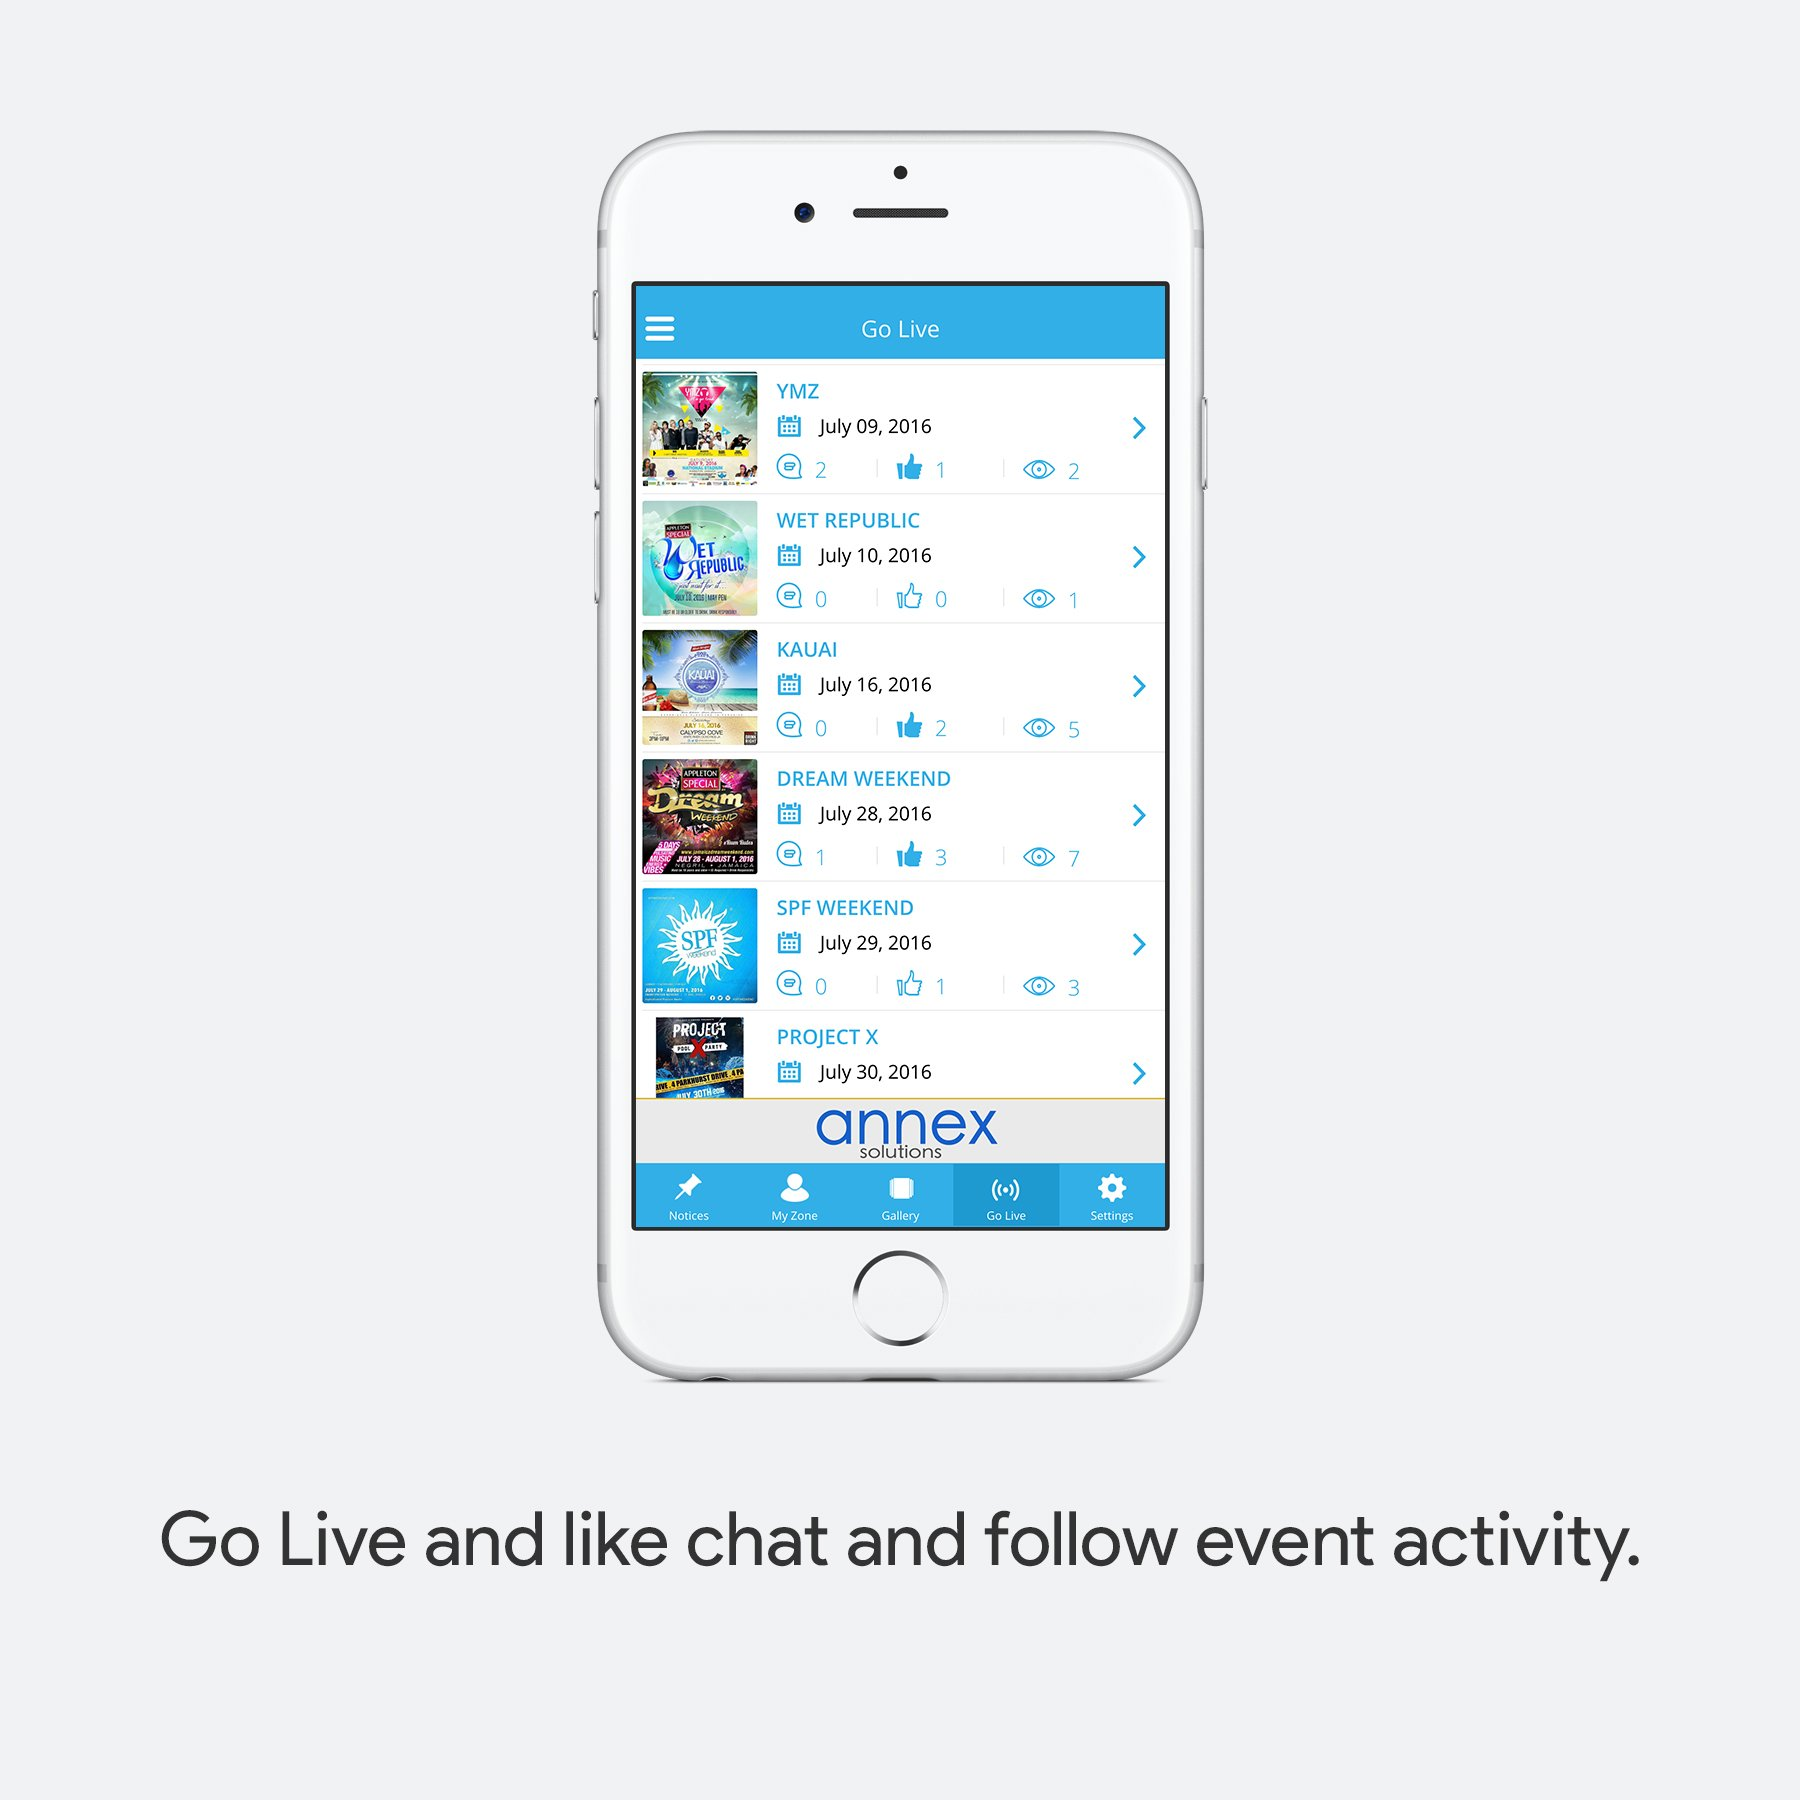 Go live and like chat and follow event activity.